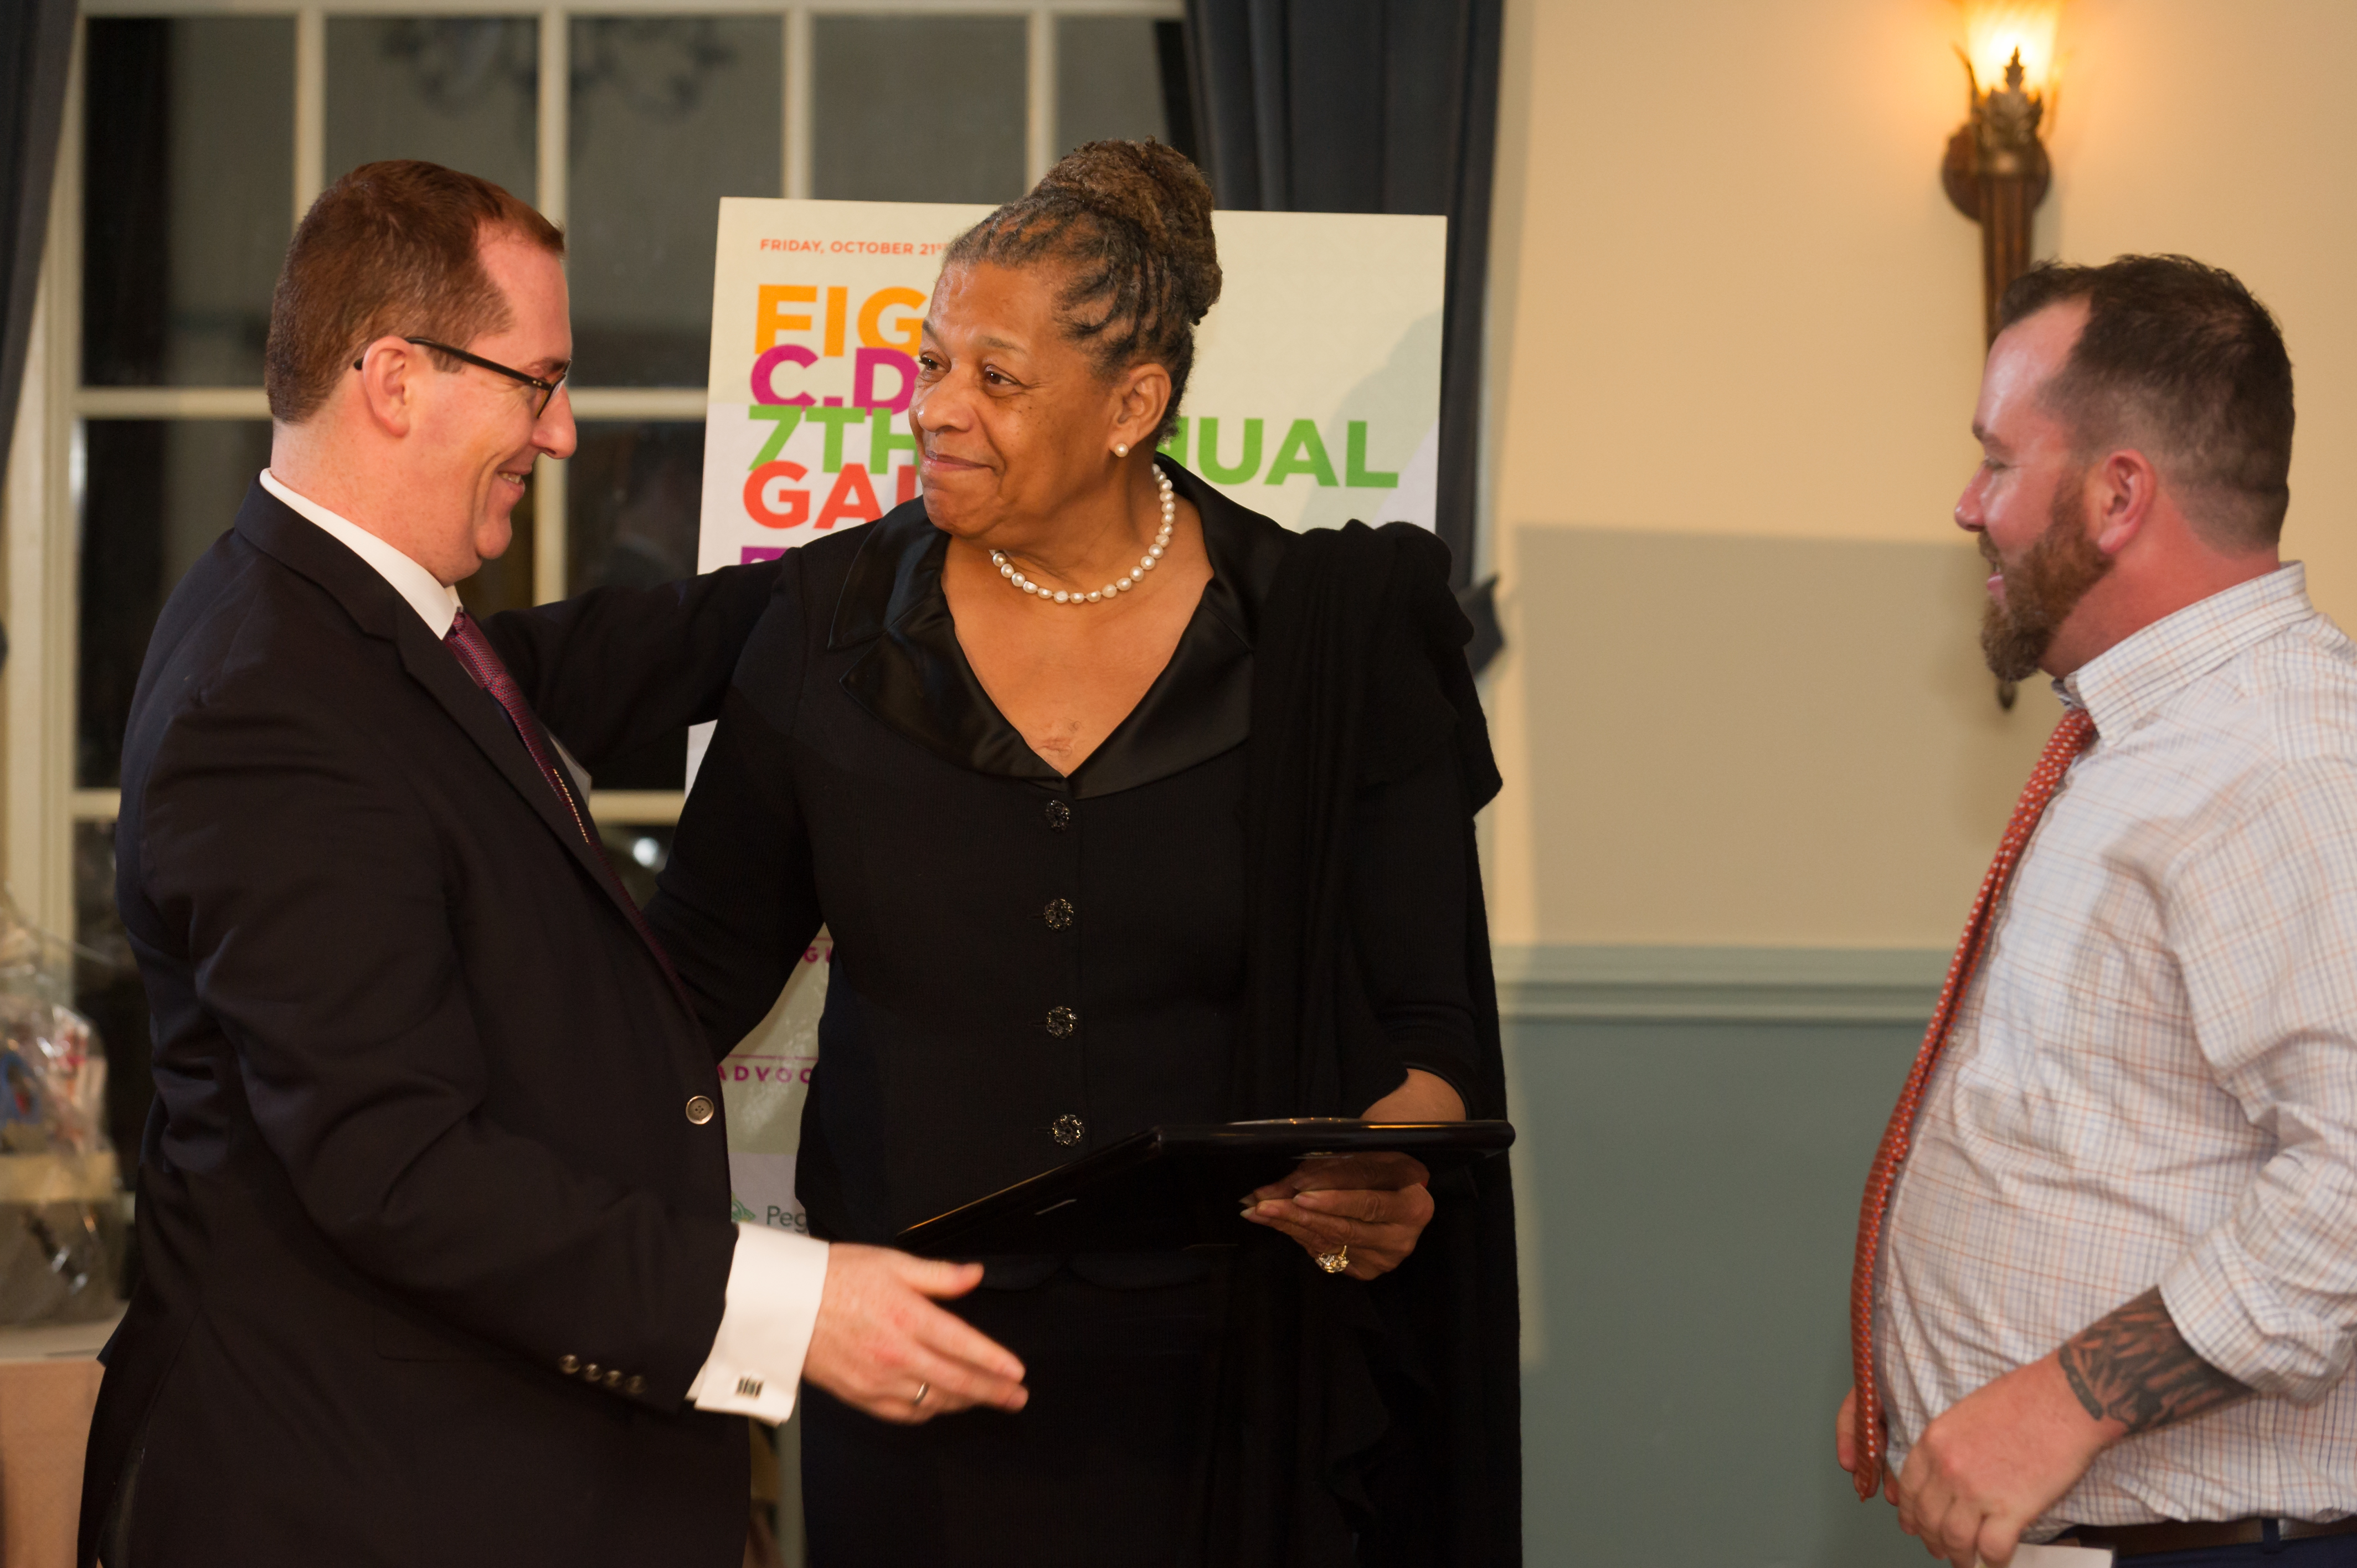 Former Senator Ruth Hassell-Thompson accepting the Advocates Award from Christian & Liam Lillis